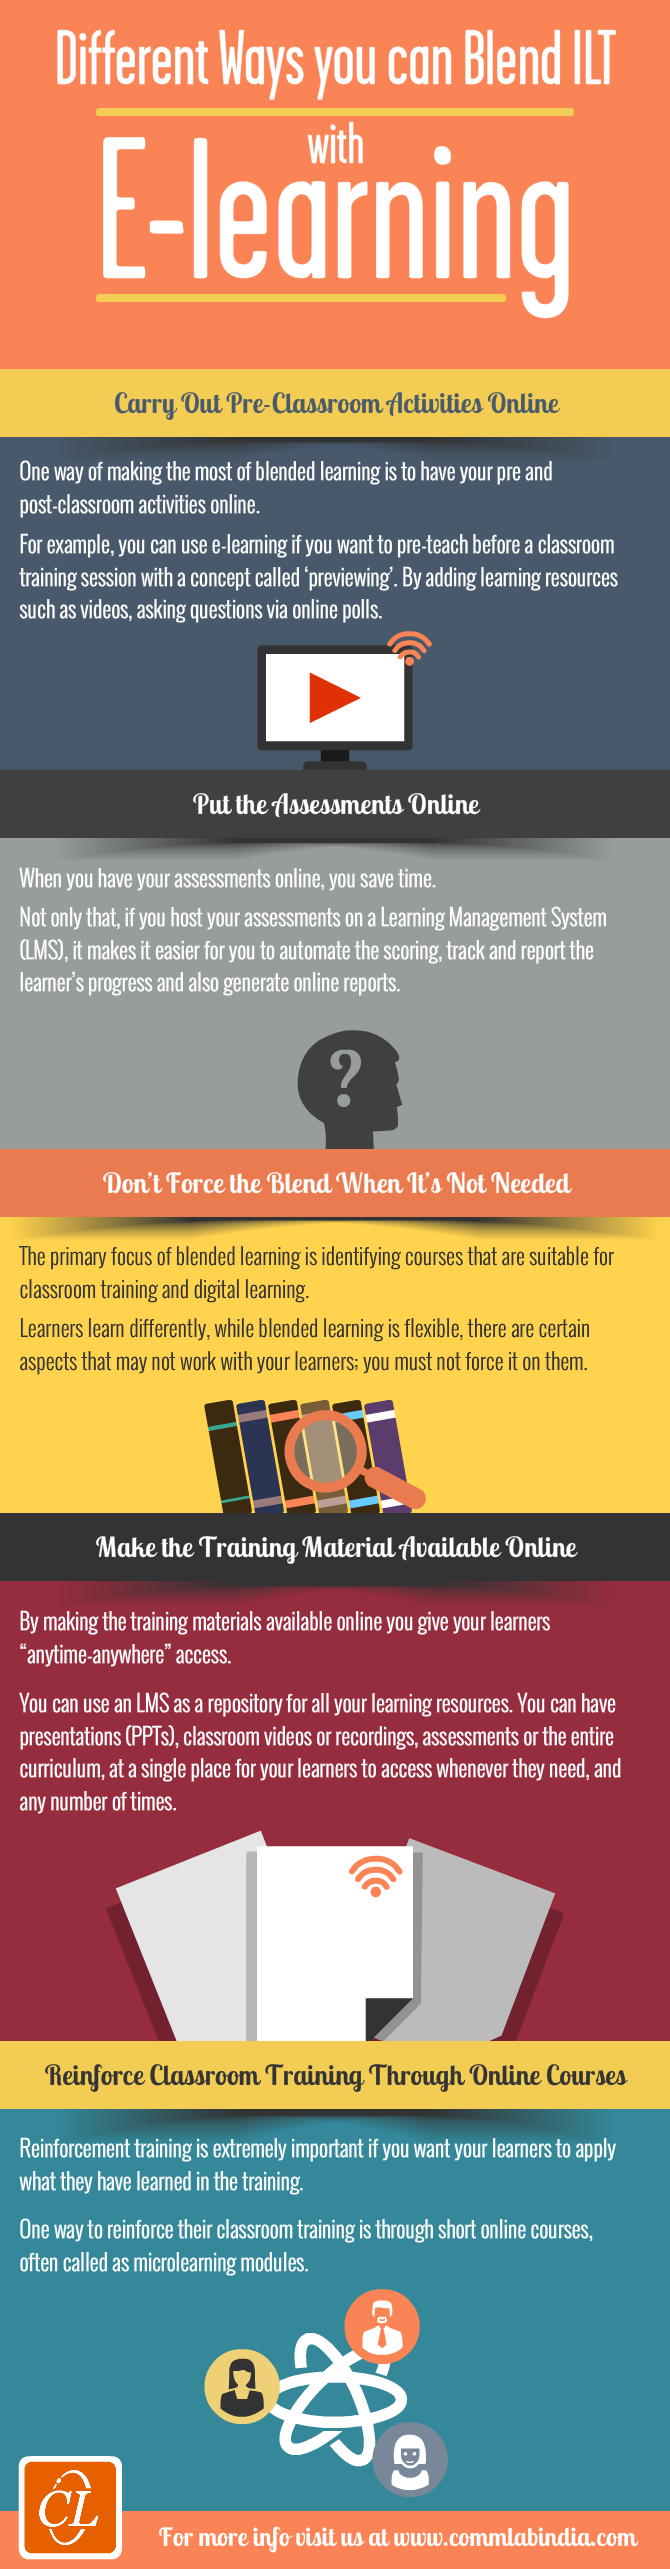 Different Ways You Can Blend ILT with E-learning [Infographic]